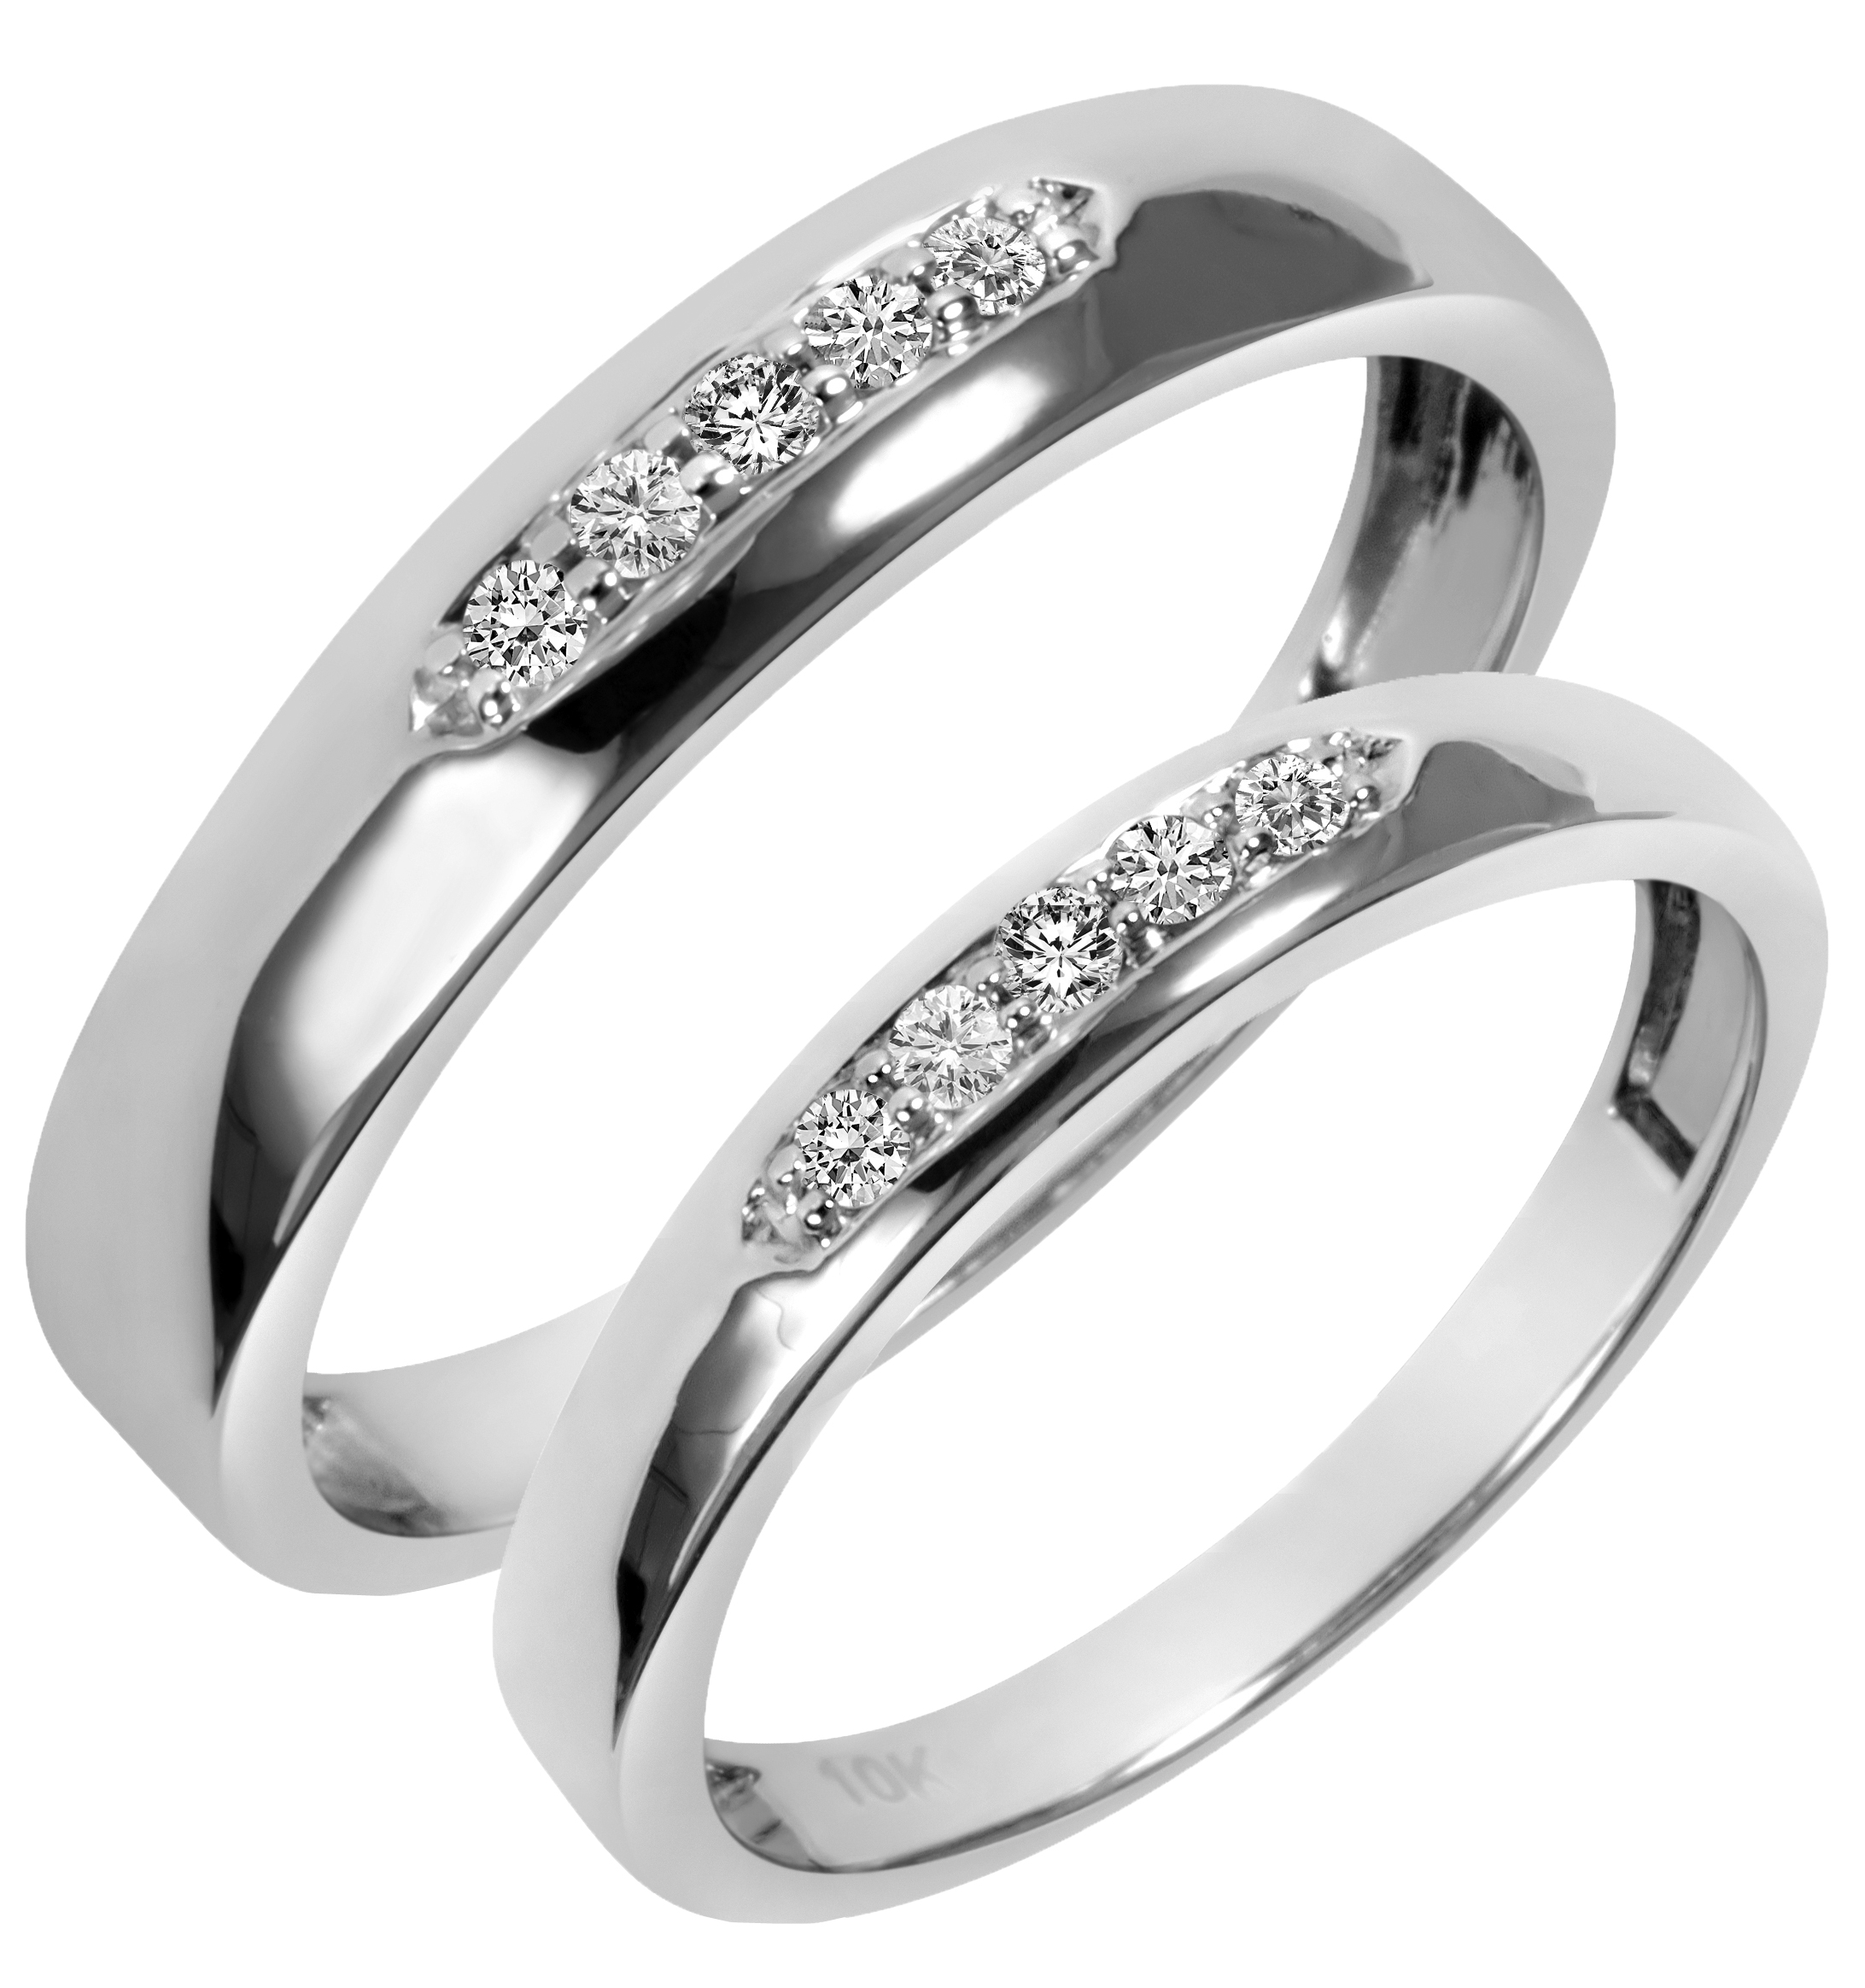 wedding band sets 1/5 carat t.w. diamond his and hers wedding band set 14k white gold | my aztvqdu